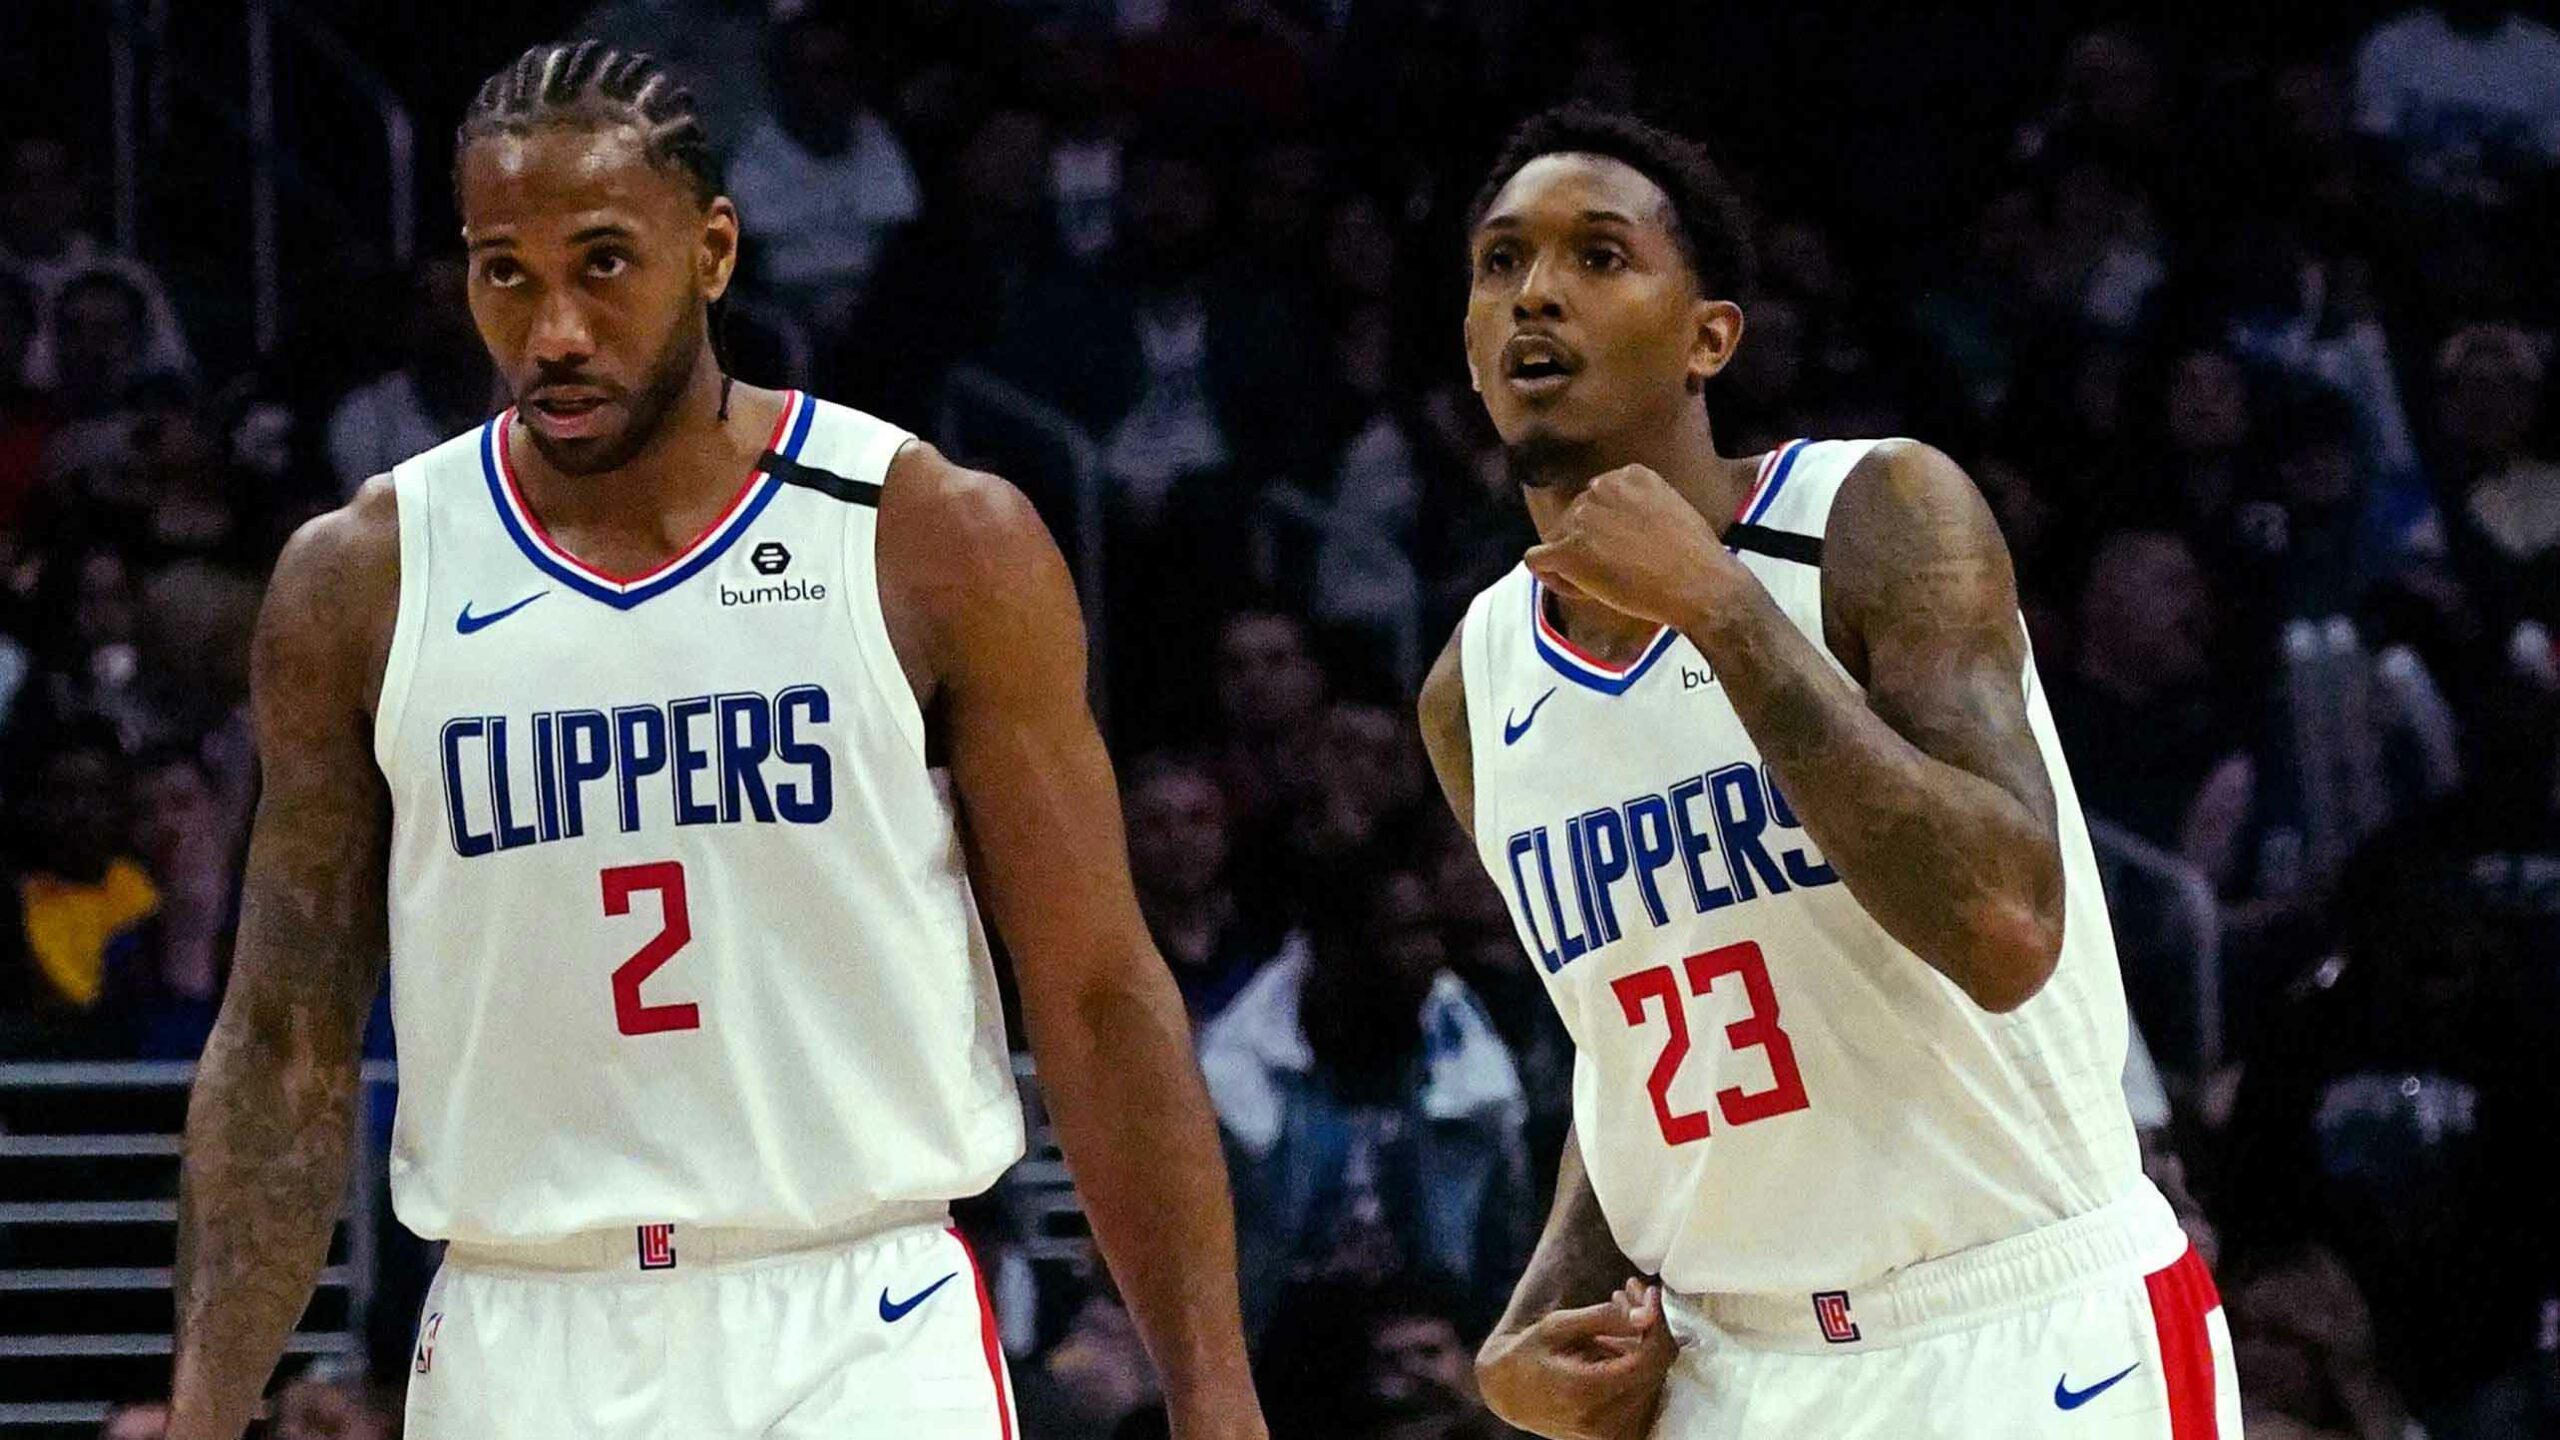 Clippers working out together -- via video -- during shutdown